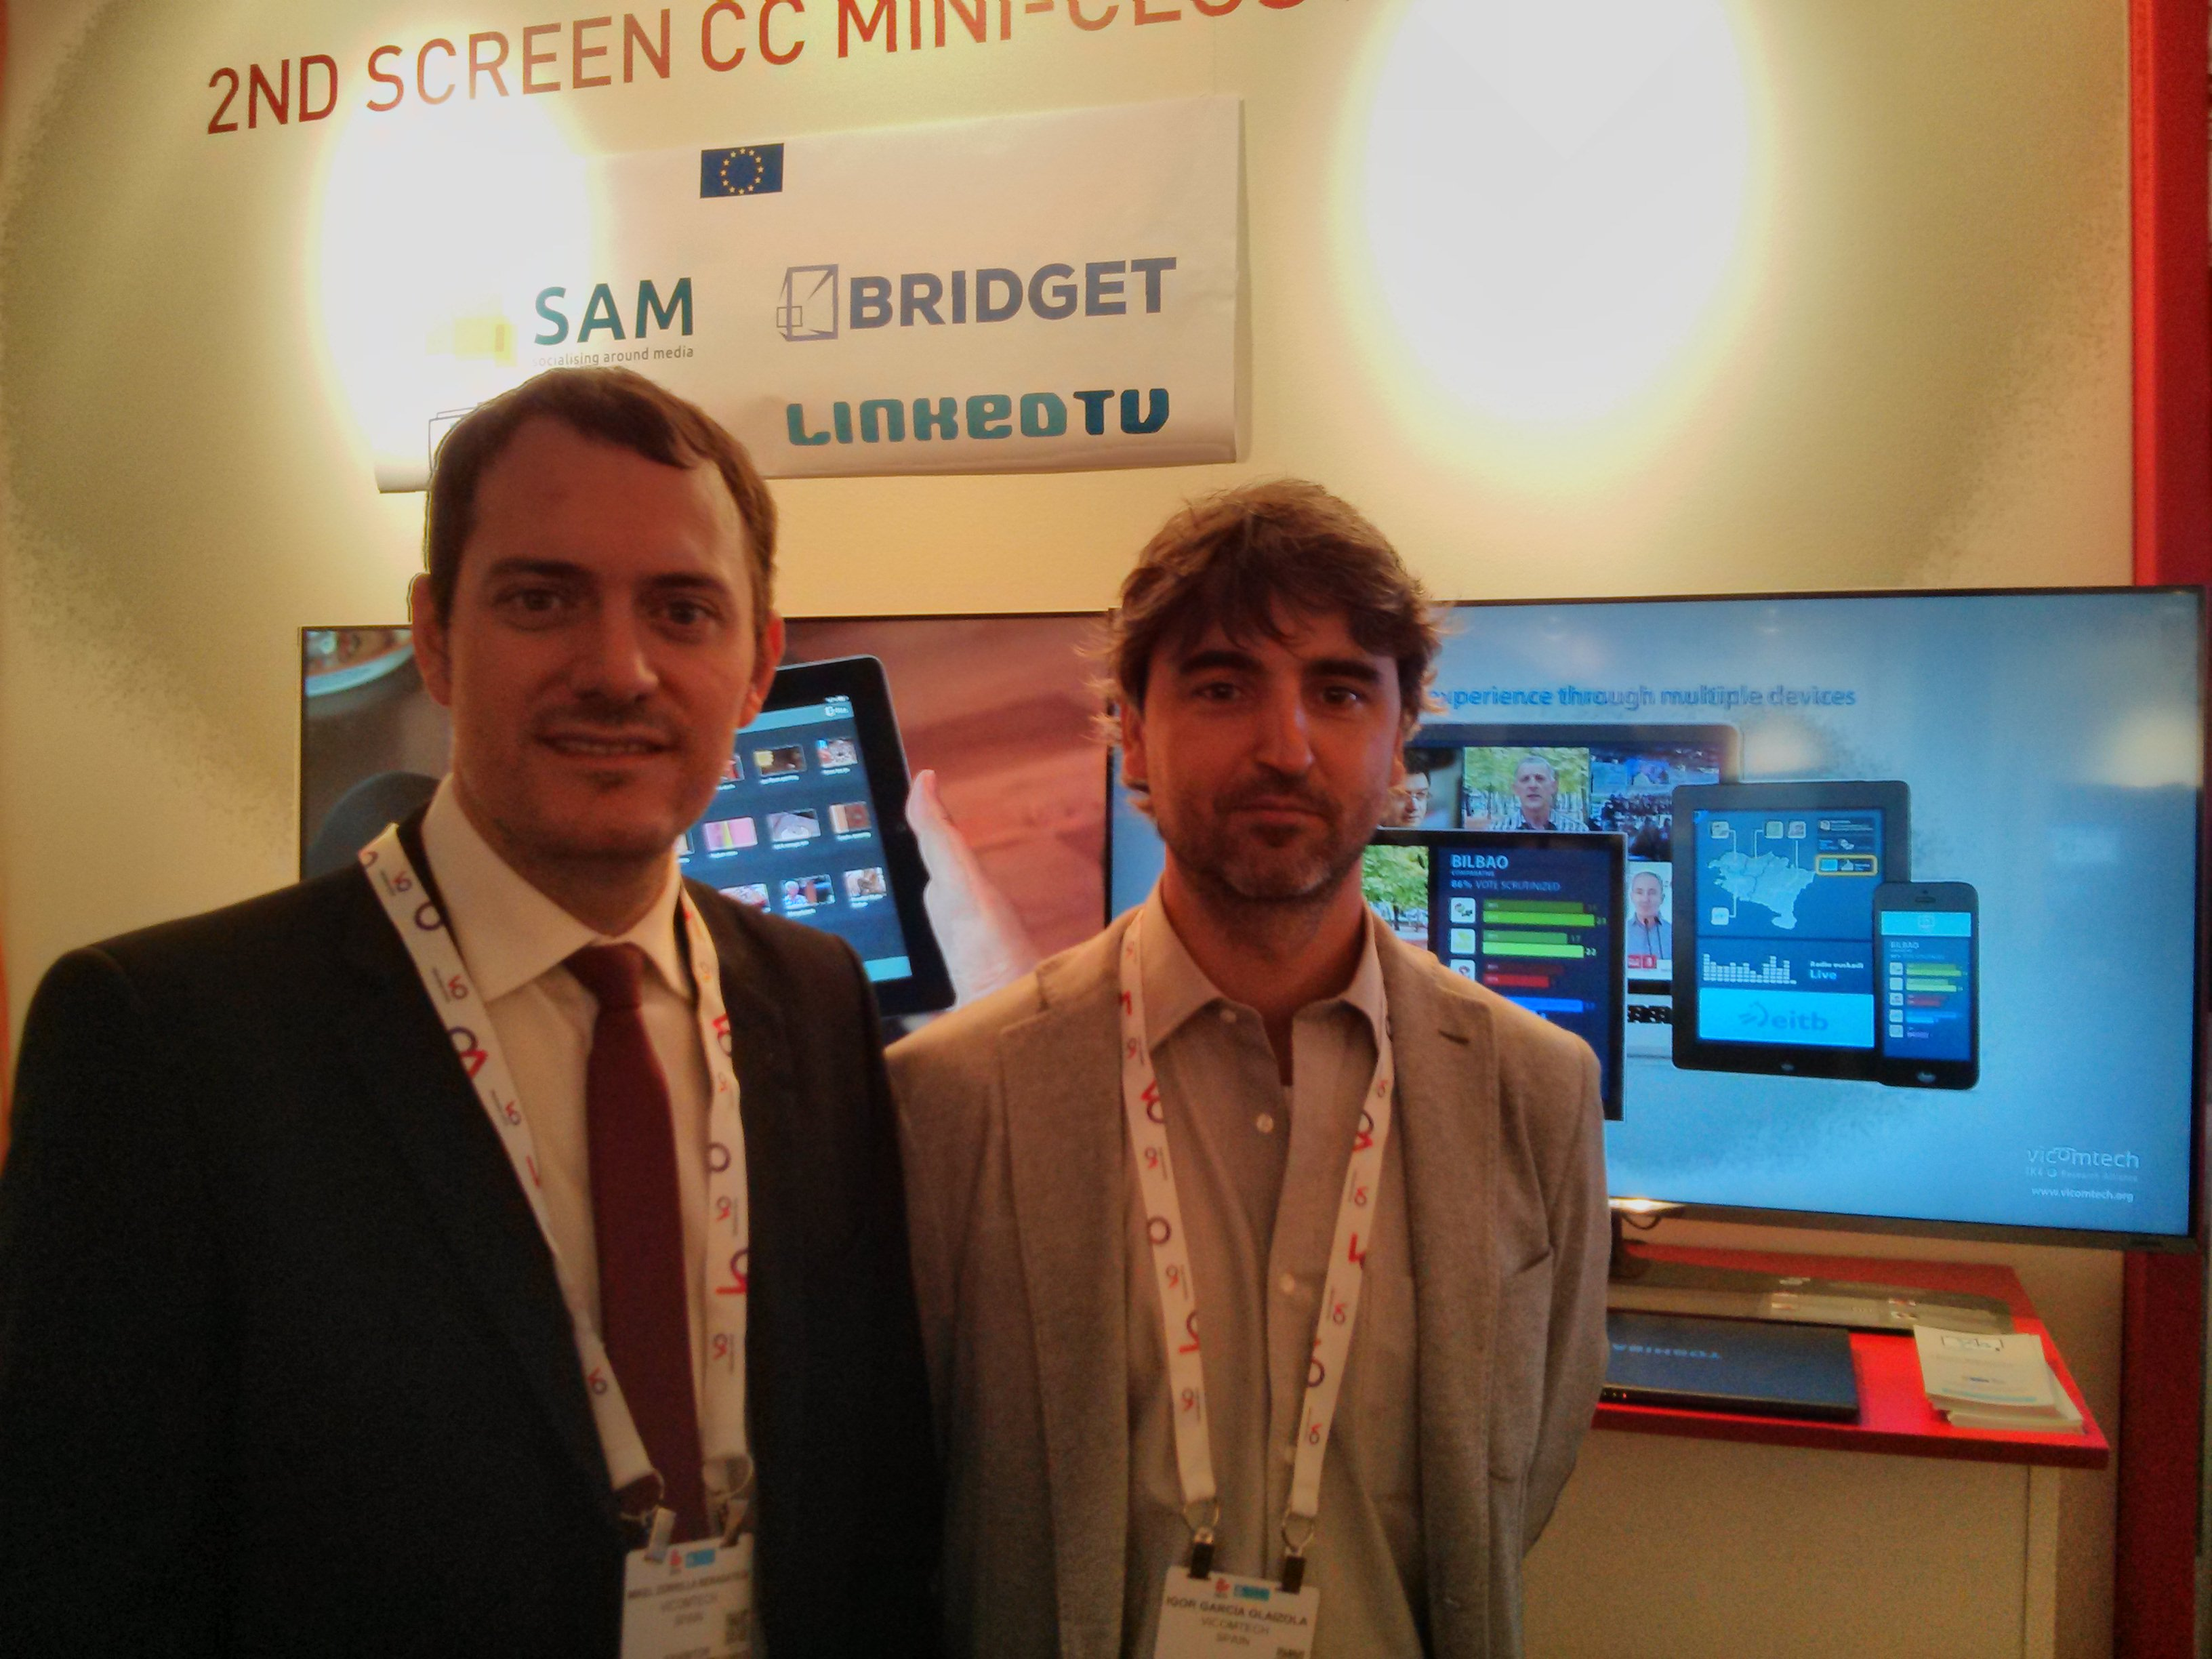 Vicomtech-IK4 presents multi-screen systems for multimedia content in IBC 2015 in Amsterdam from 11th  to 15th of September